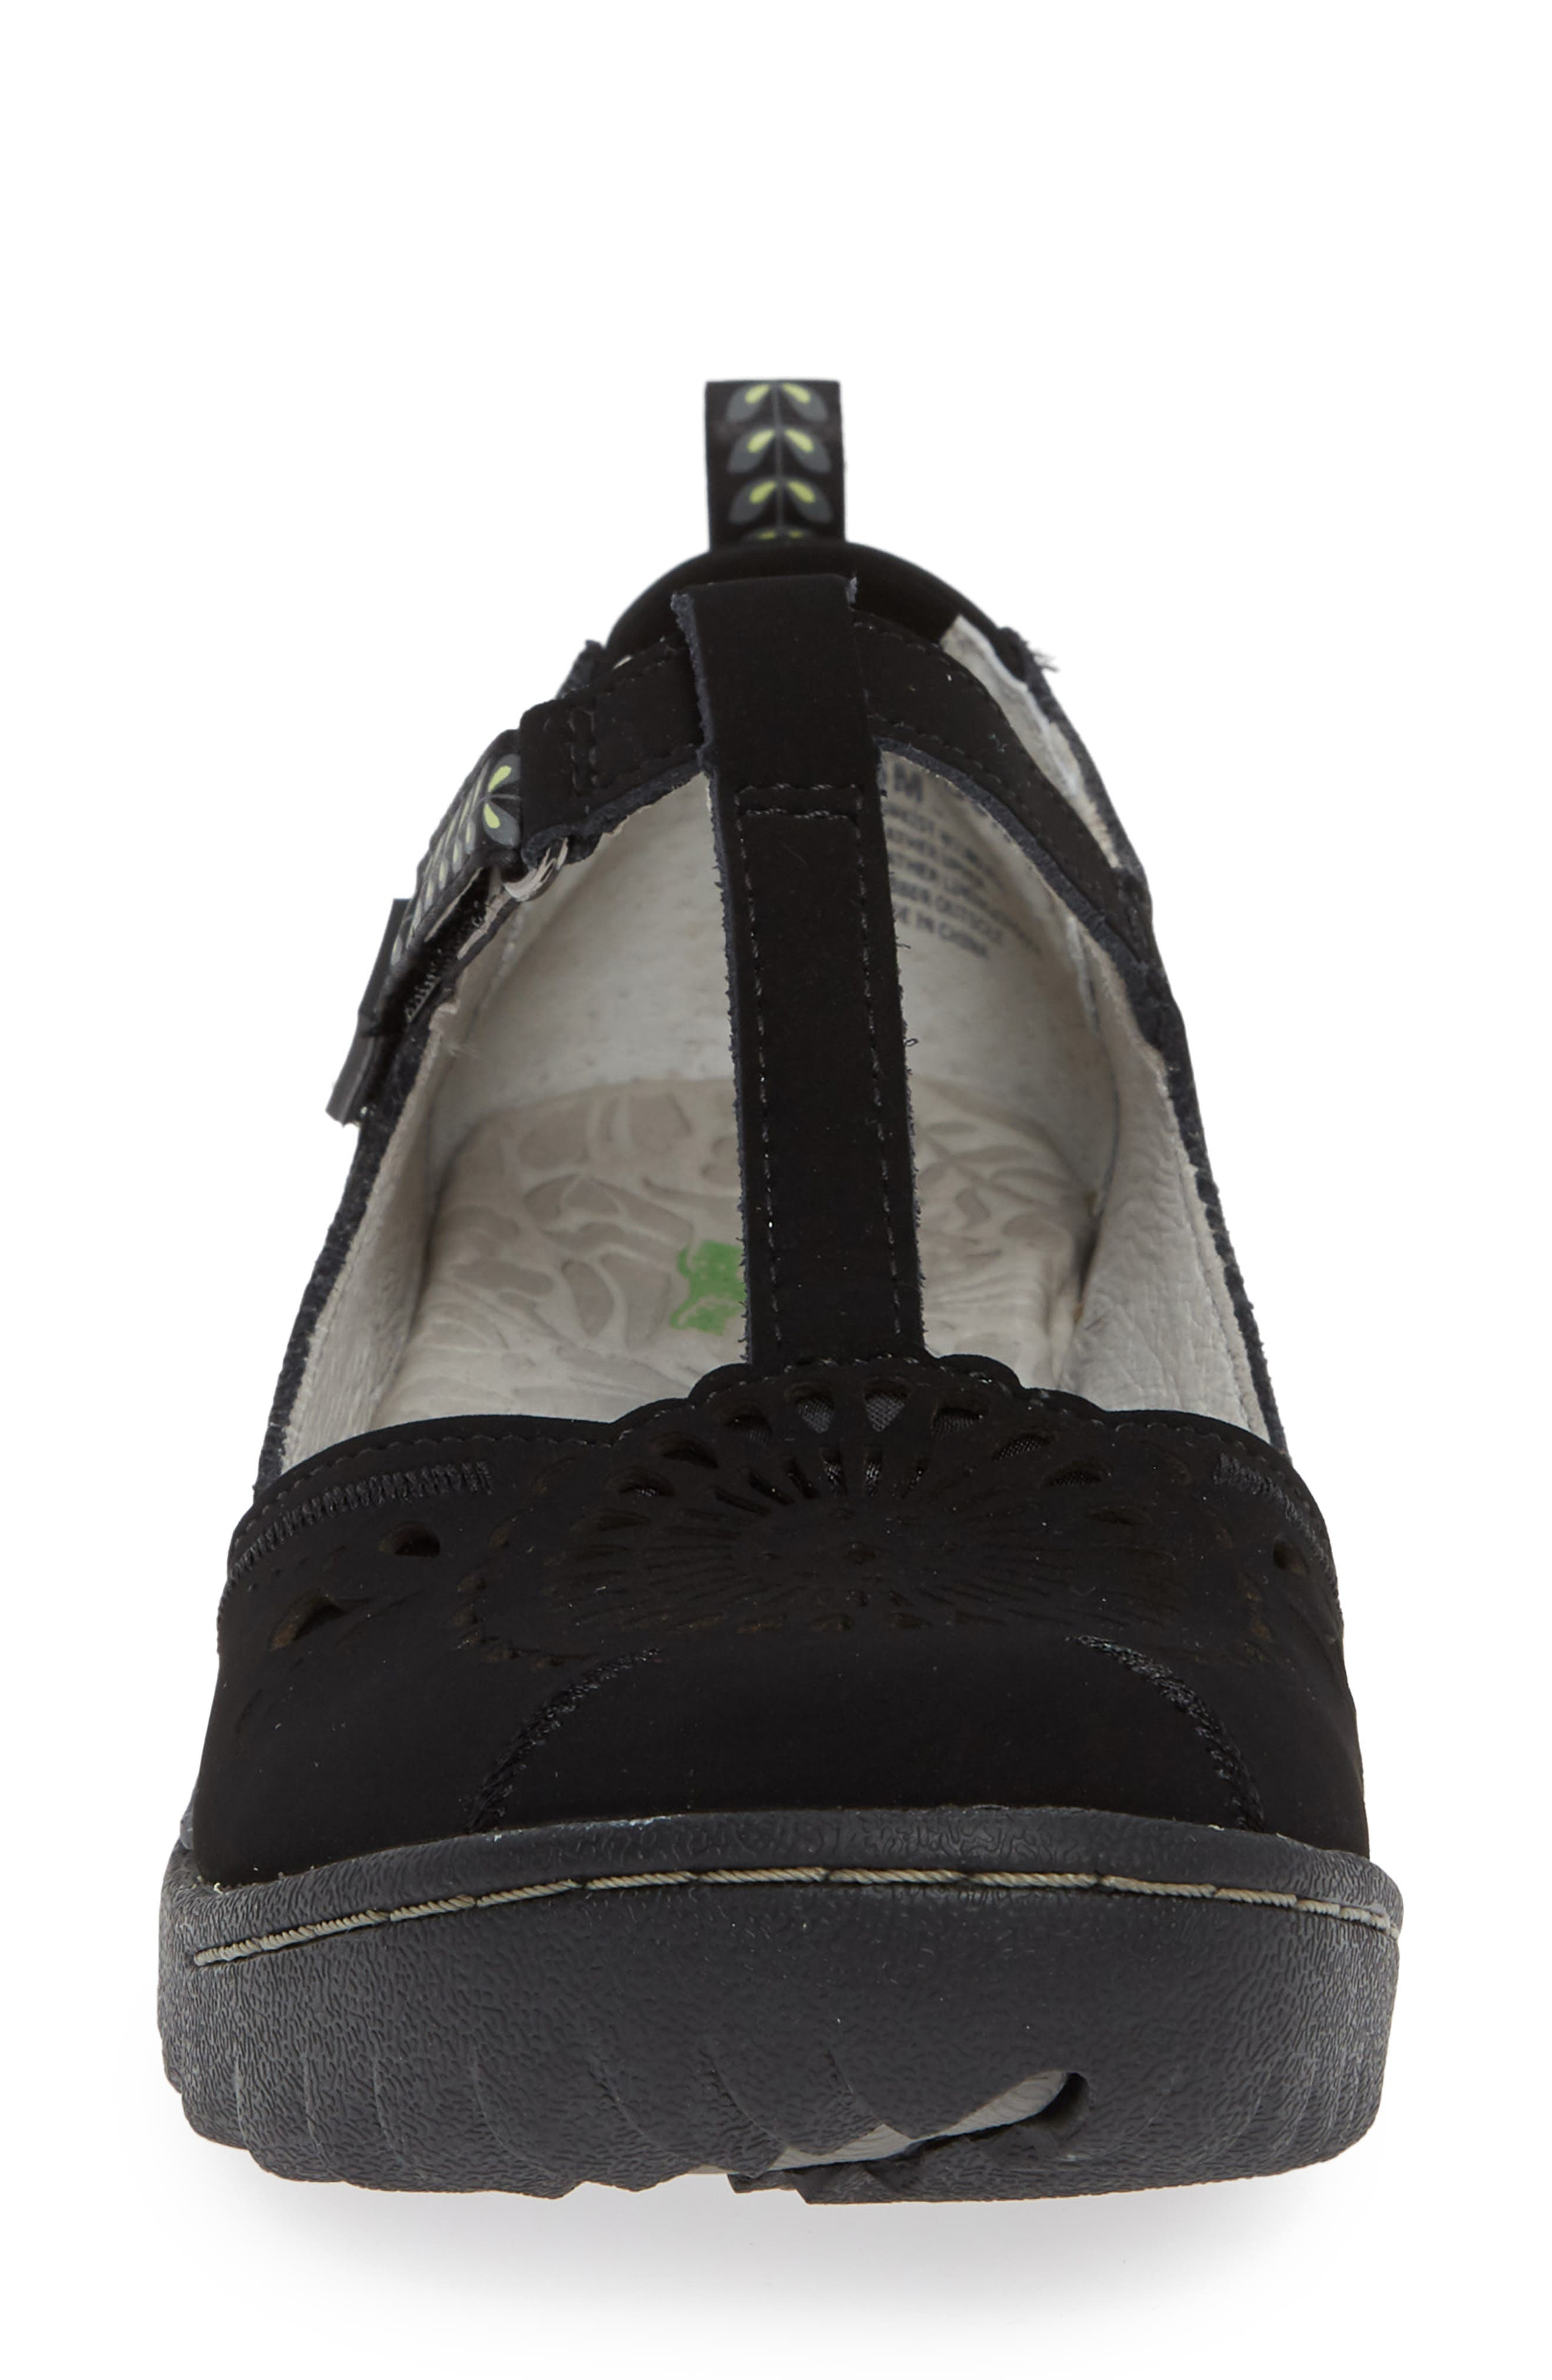 Sunkist Strappy Sneaker,                             Alternate thumbnail 4, color,                             BLACK/ CHIVE NUBUCK LEATHER